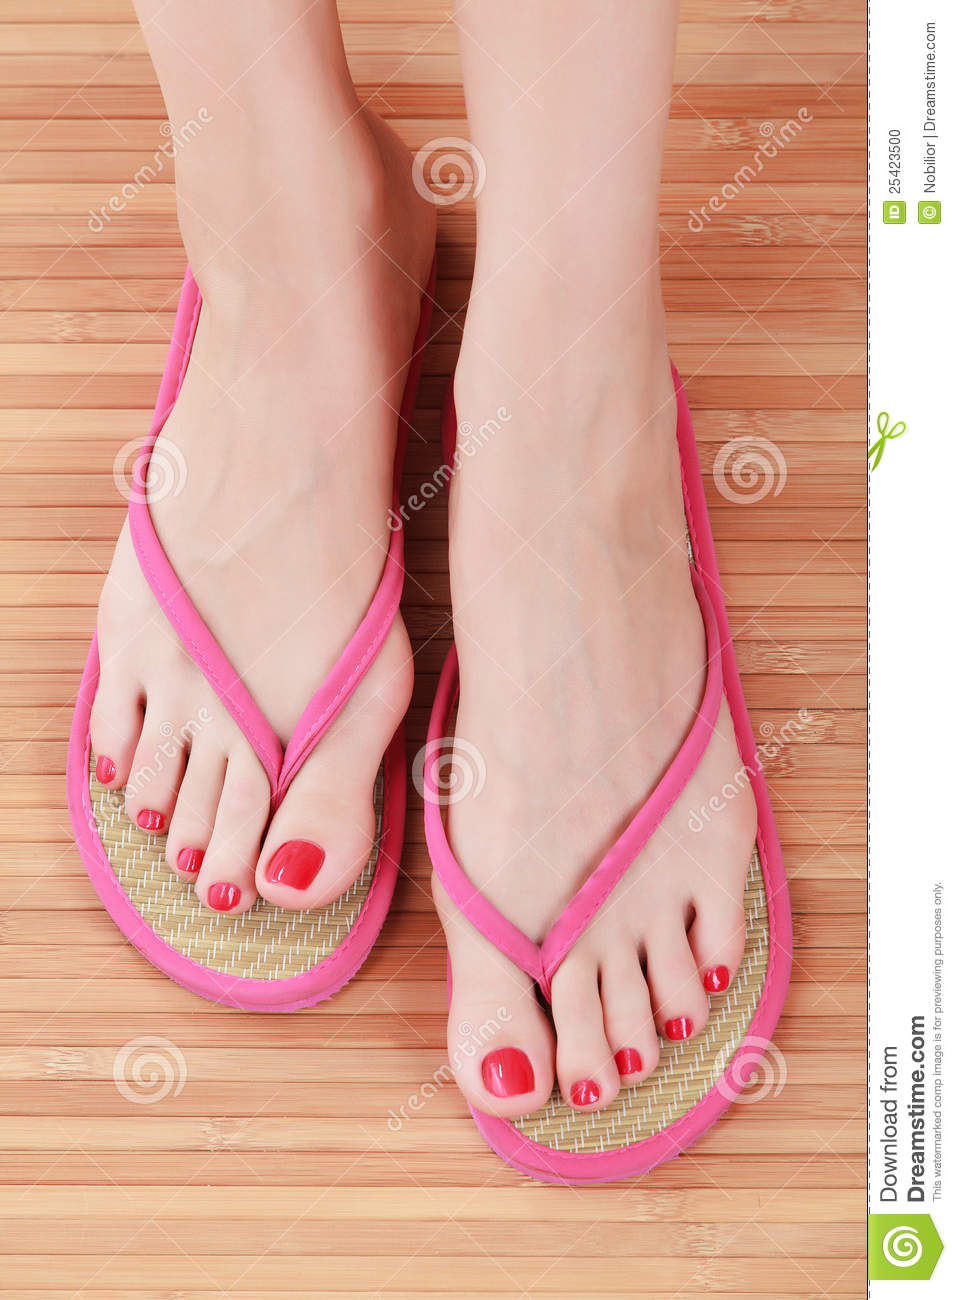 Female Feet With Flip Flops Stock Photo Image Of Pretty